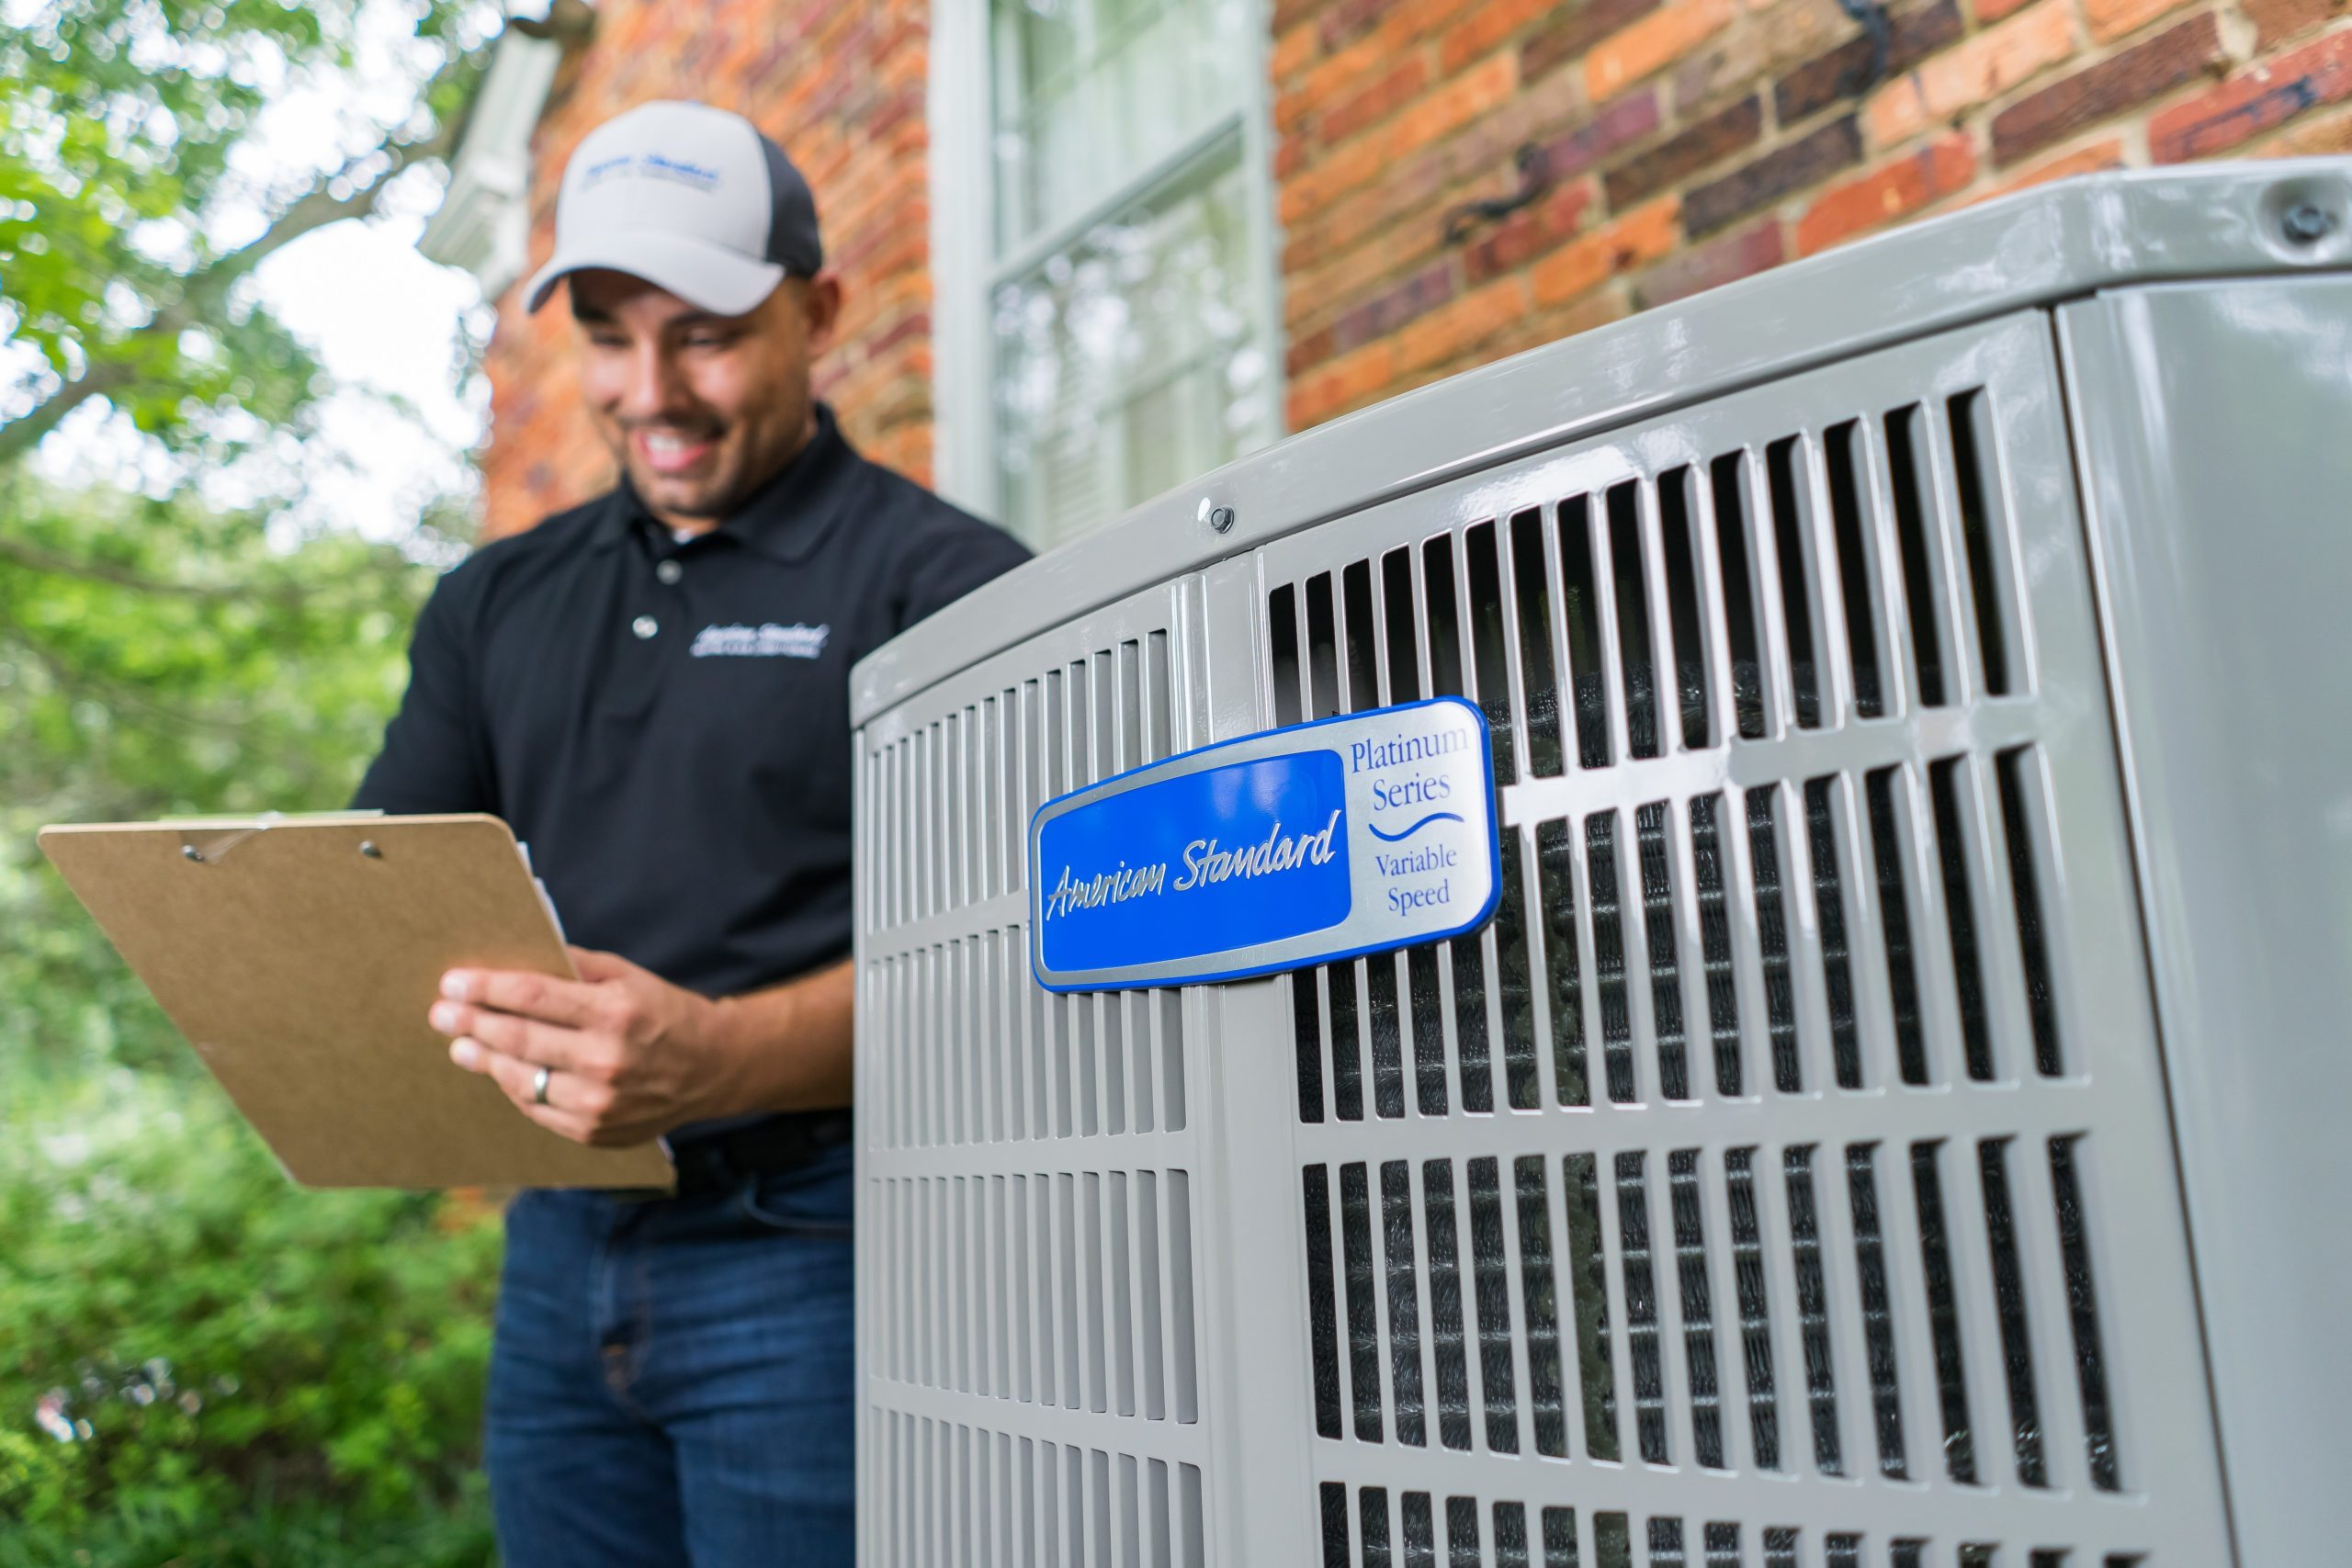 Close up on logo of Platinum 20 Heat Pump / Air Conditioner placed outside while American Standard technician makes notes